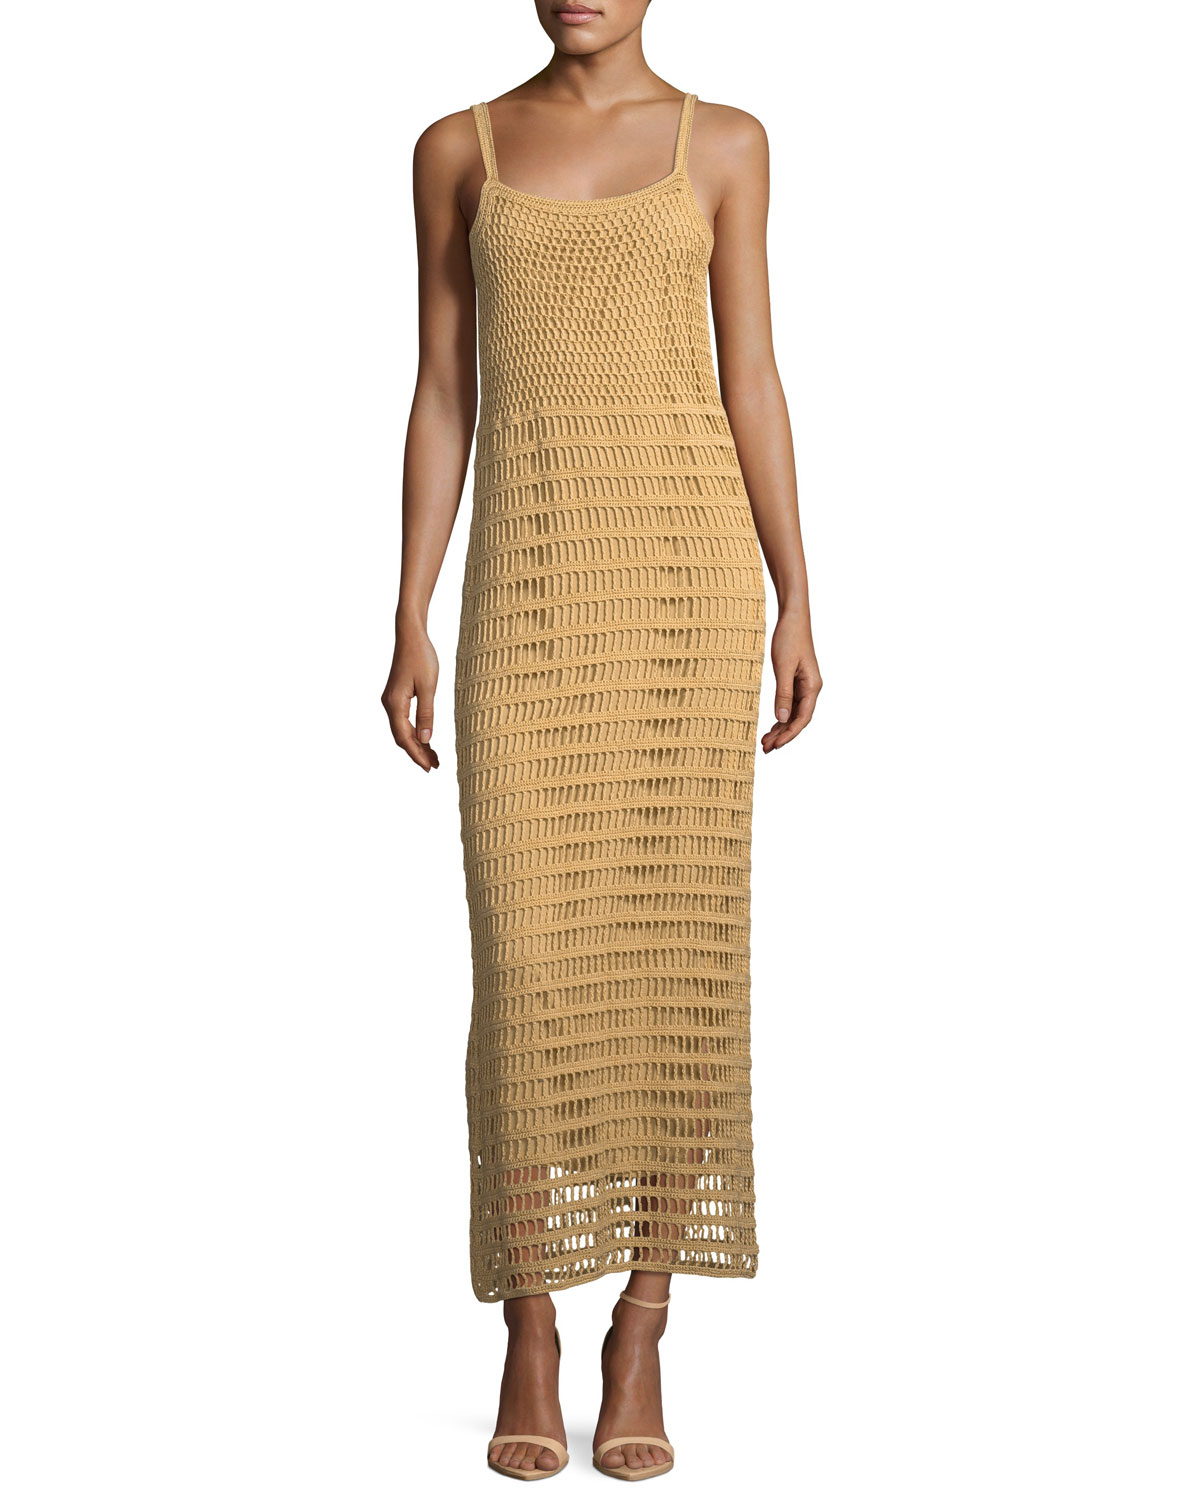 Elizabeth James Edna Hand Crochet Long Sleeveless Dress Neiman